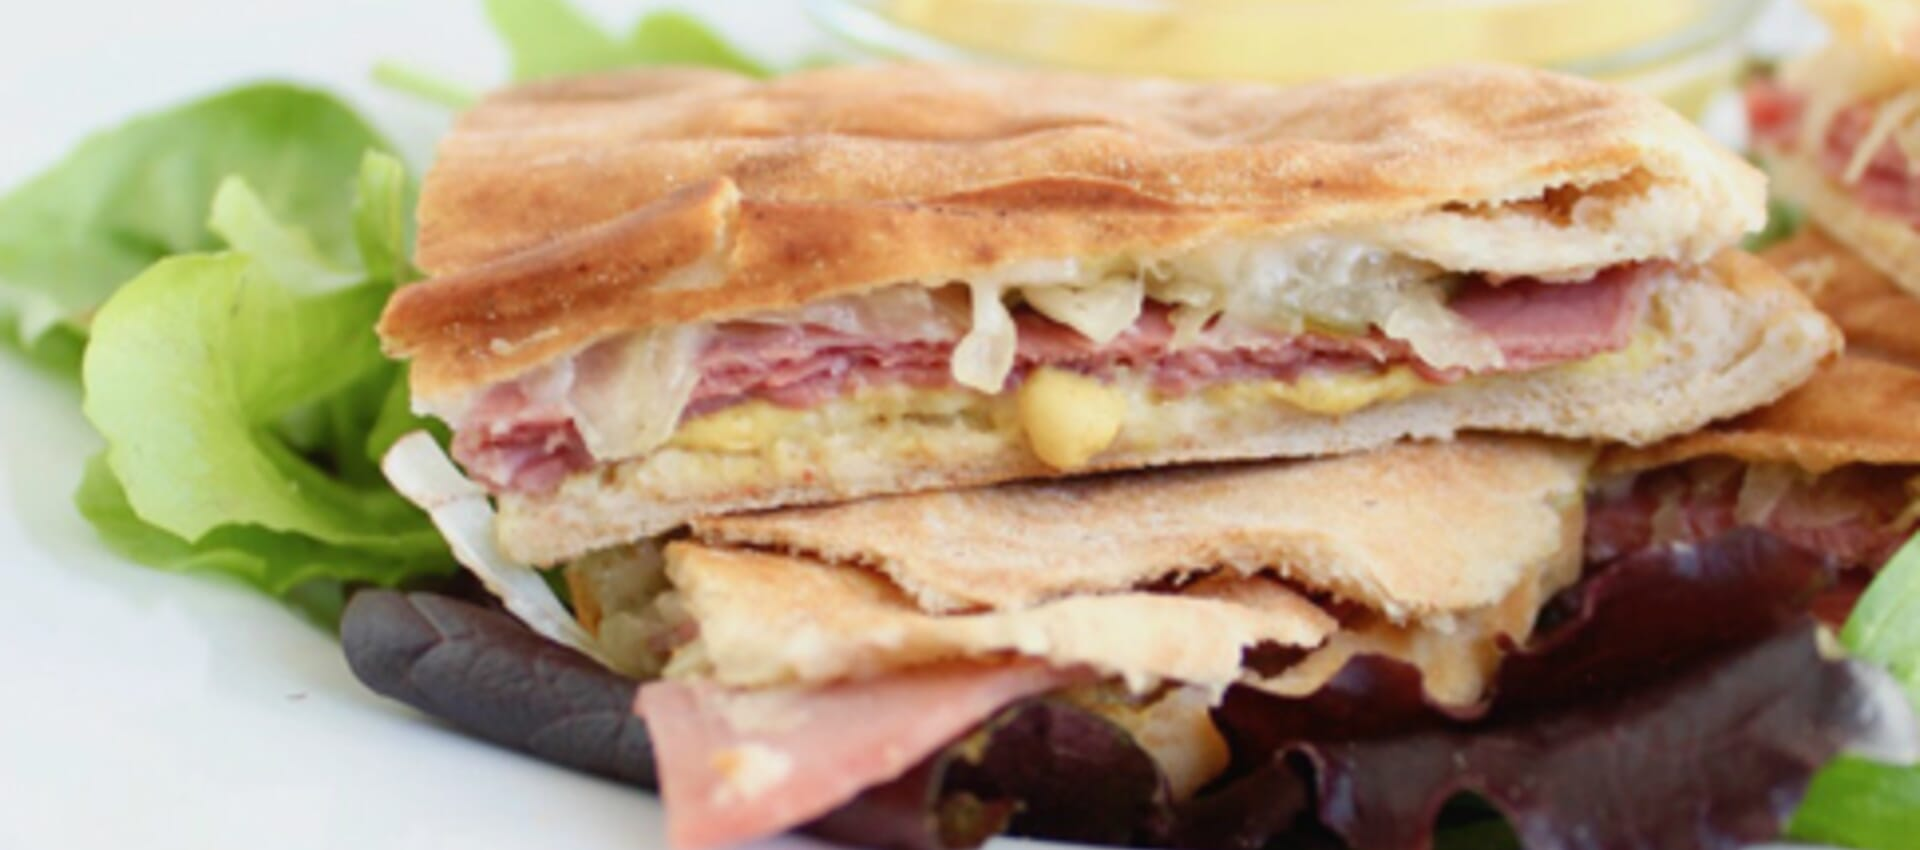 Corned Beef and Cabbage Quesadilla